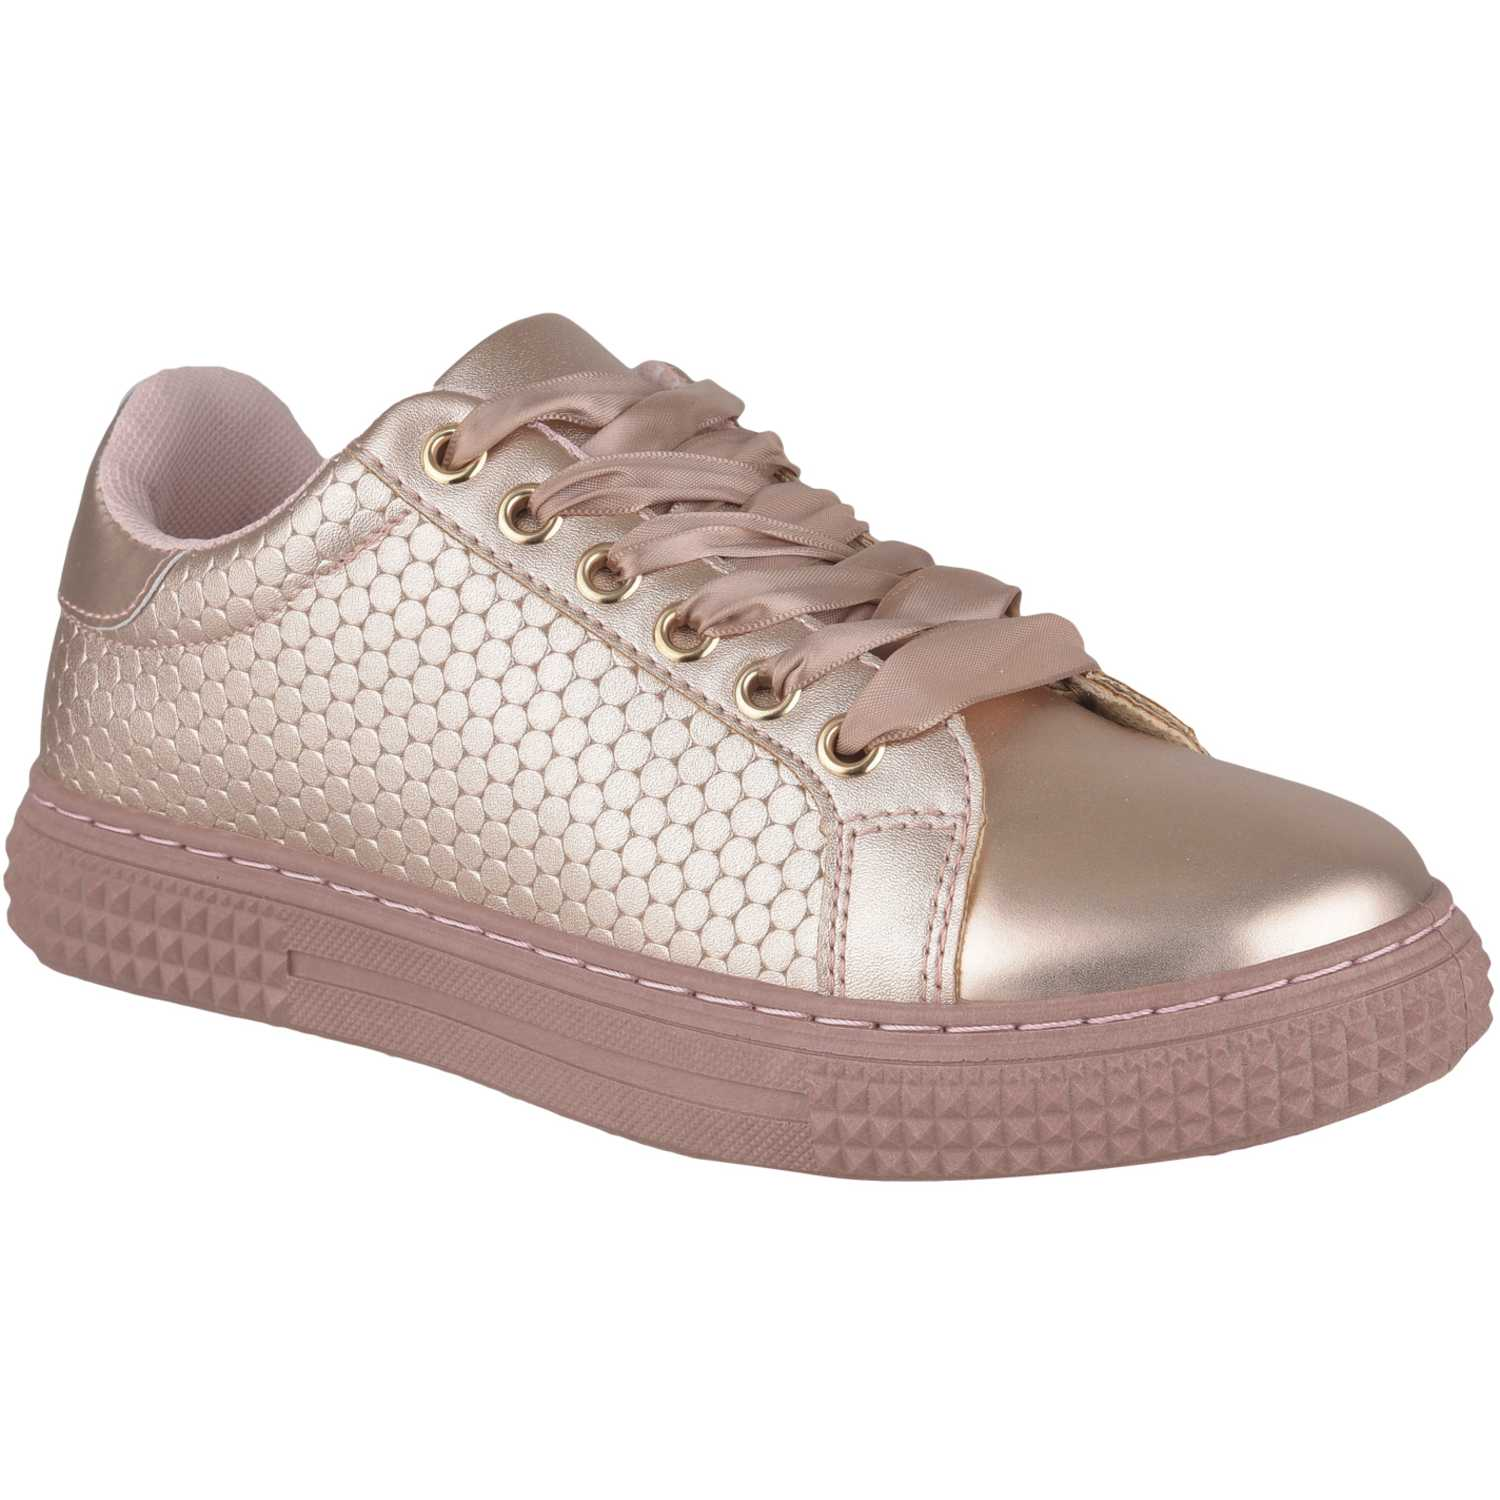 Platanitos zc-7016 Rosado Zapatillas Fashion